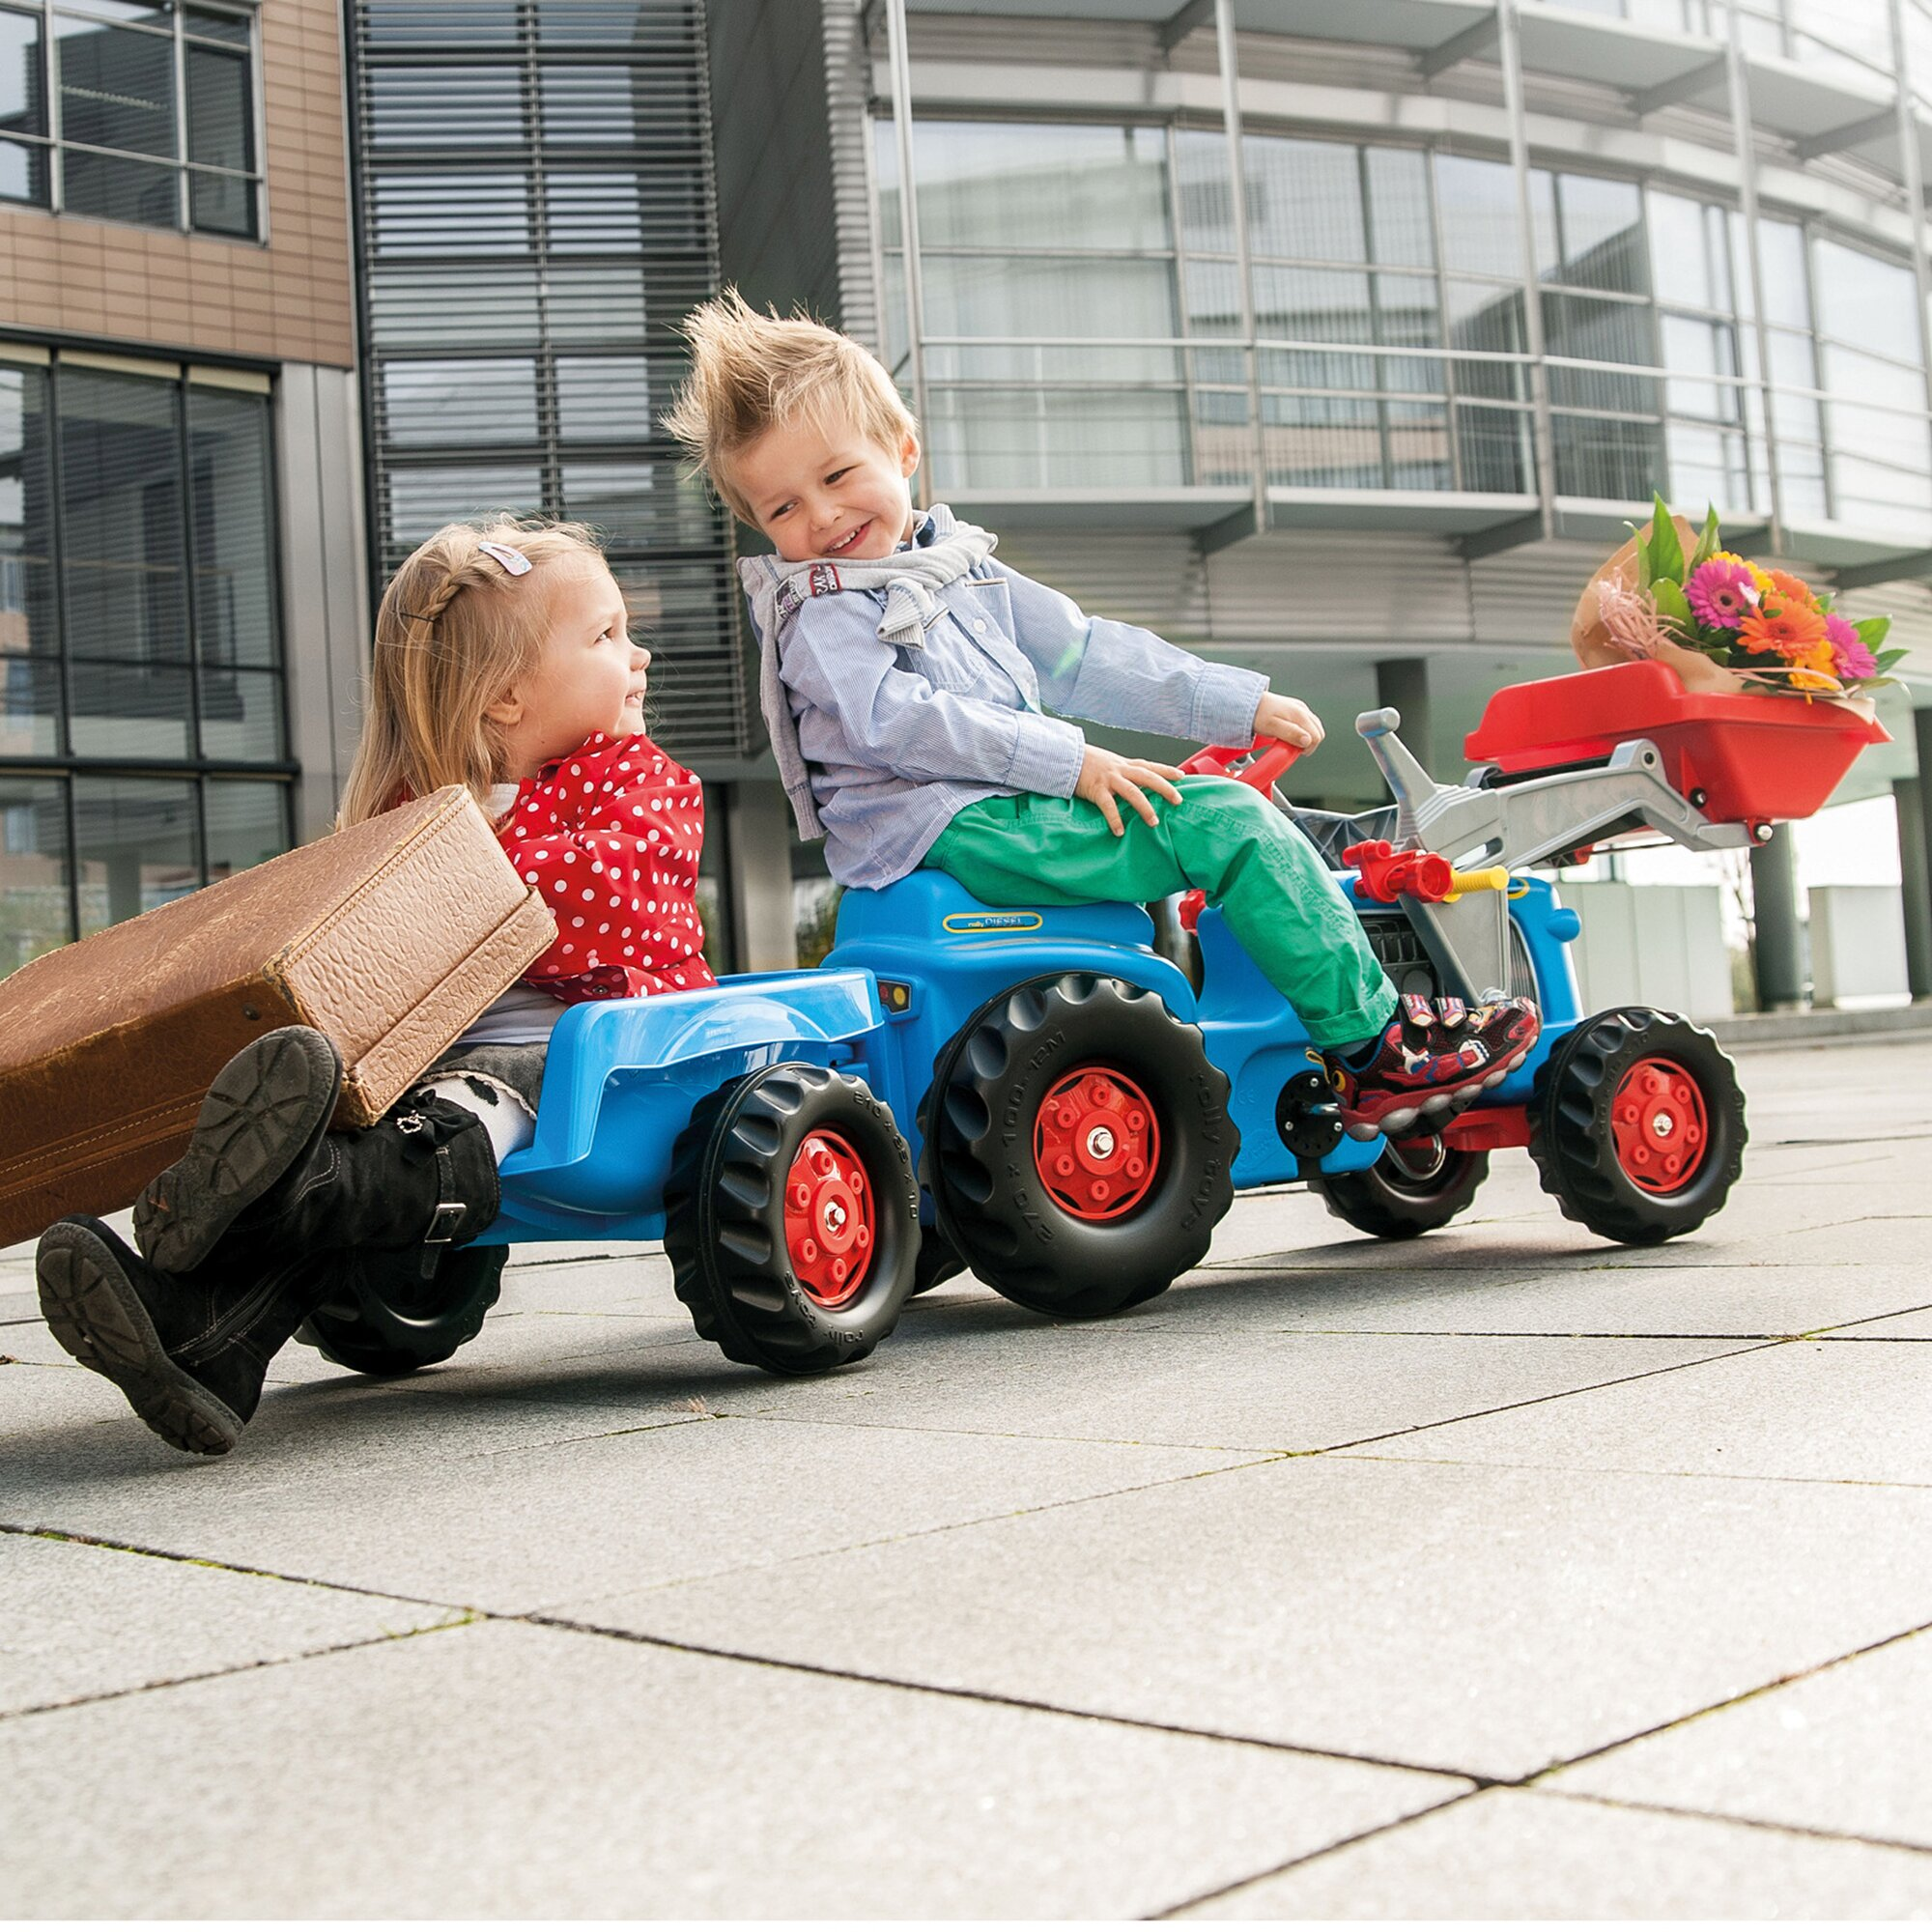 rolly-toys-trettraktor-rolly-kiddy-classic-mit-frontlader-und-anhanger